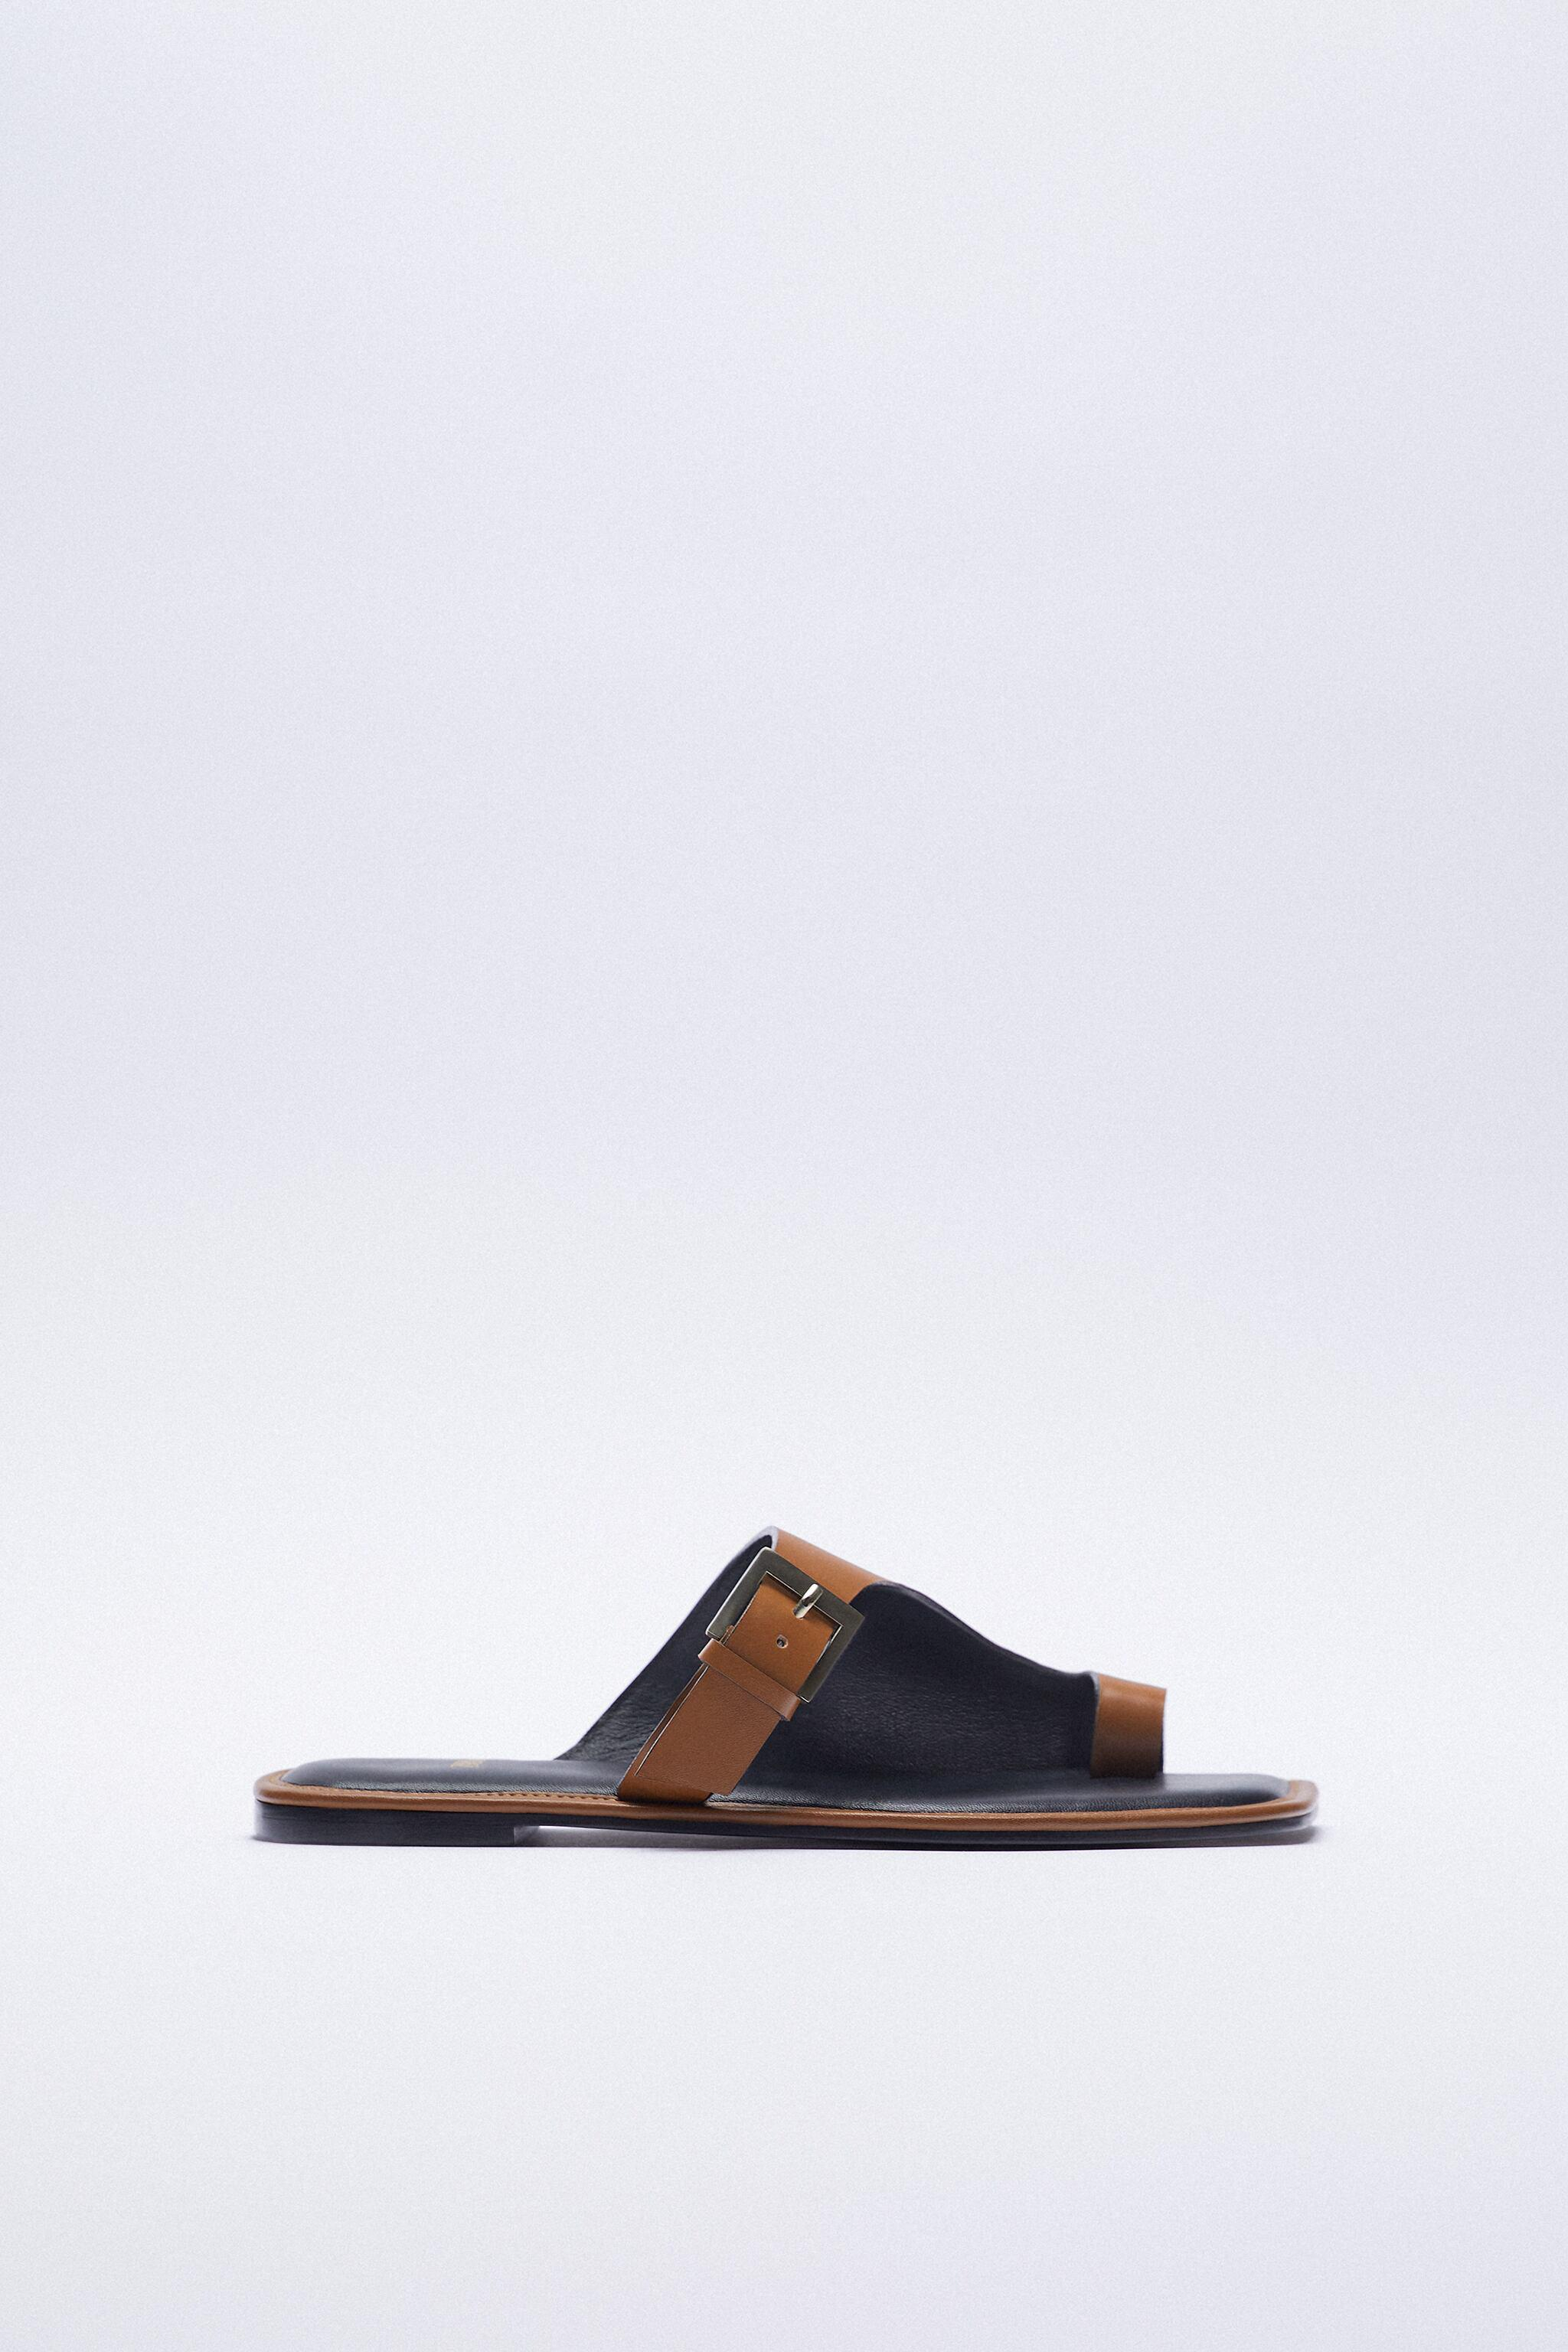 ASYMMETRICAL LEATHER SLIDE SANDALS WITH BUCKLE 6